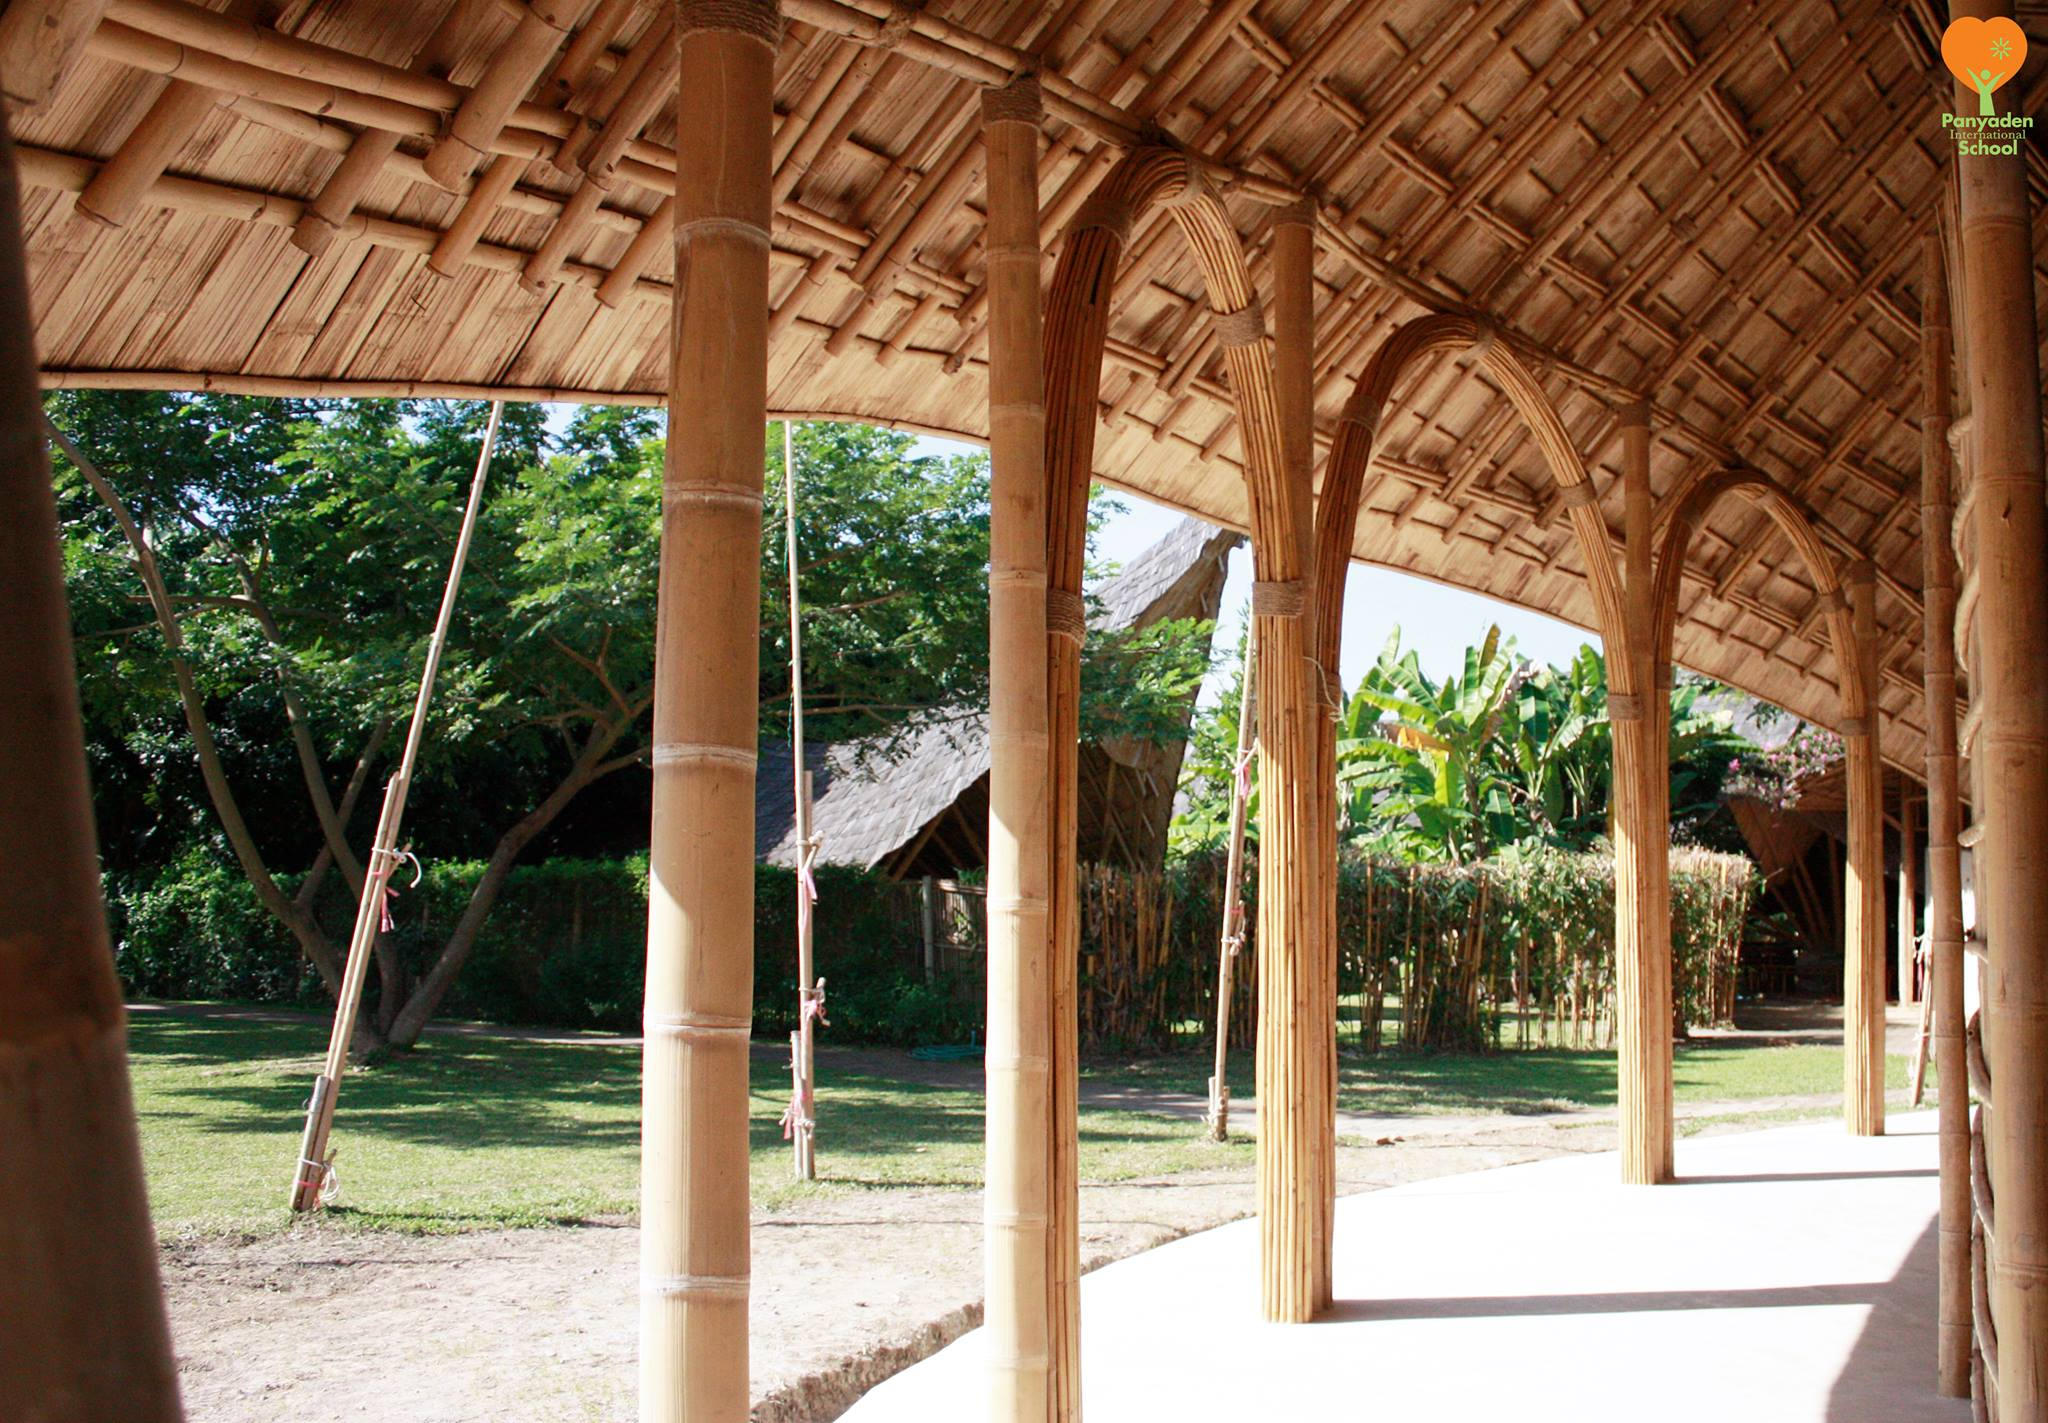 Bamboo poles and intricate roof design, Panyaden International School's new assembly hall